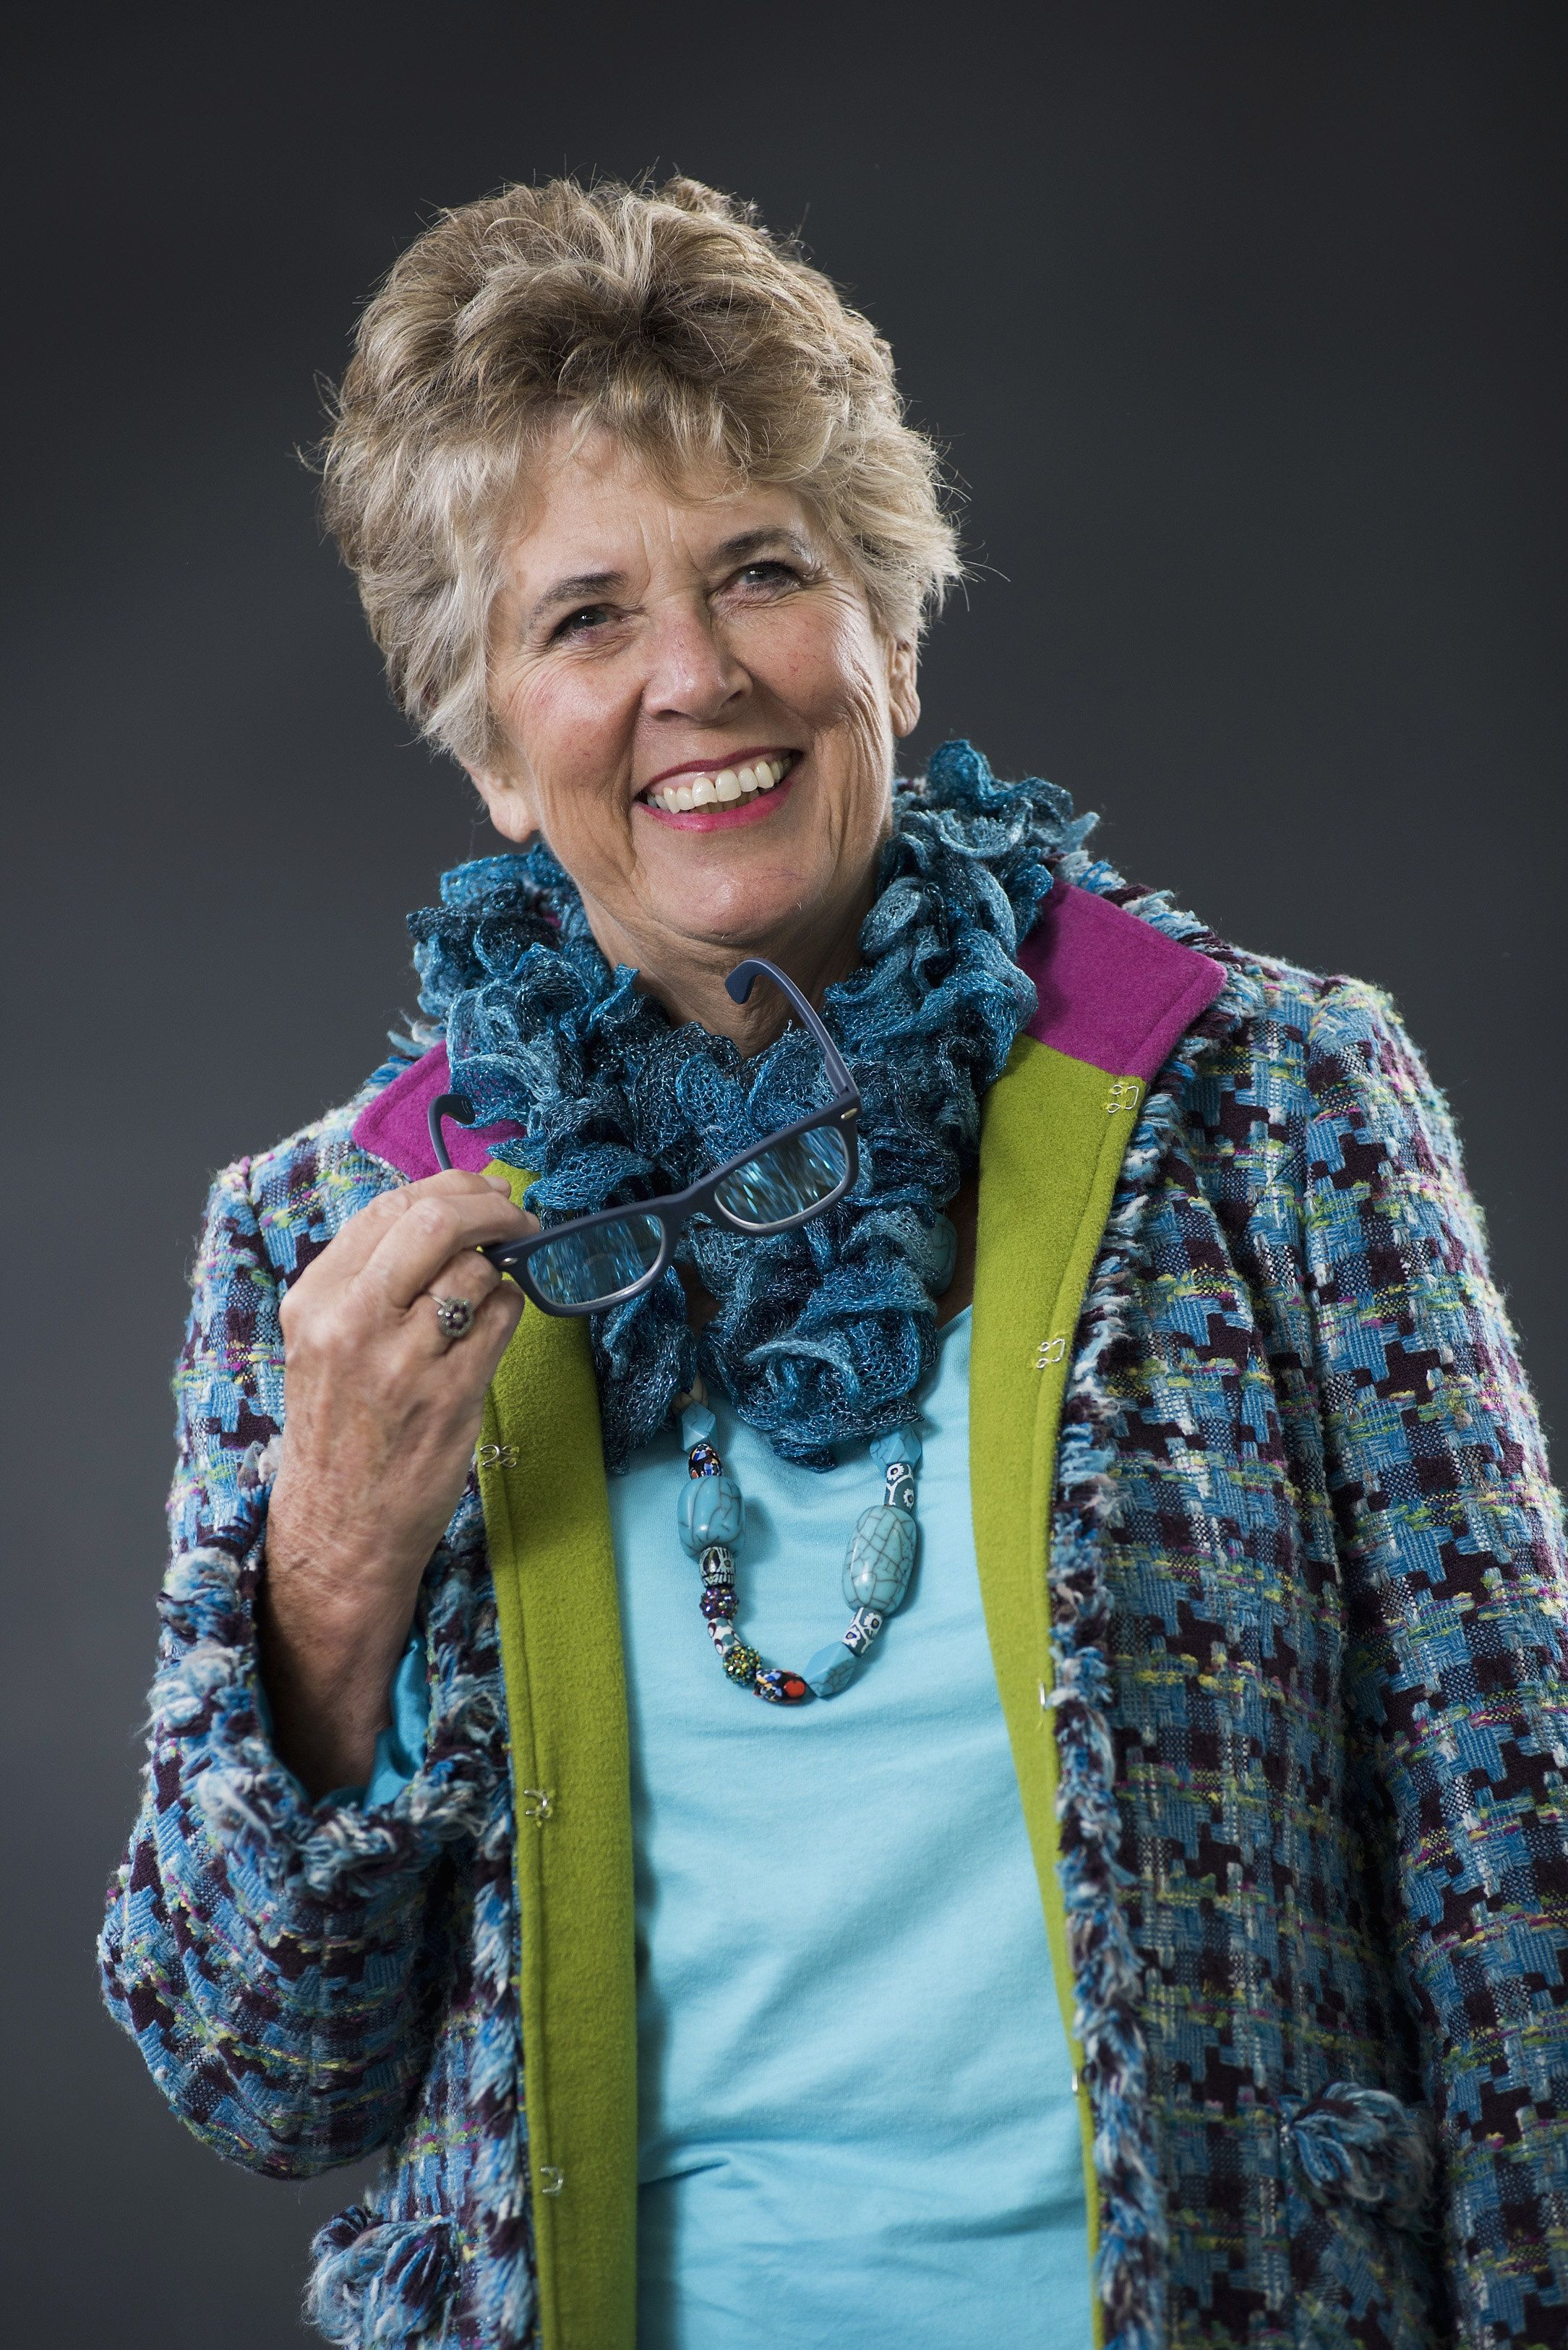 Prue Leith Had Secret 'Great British Bake Off' Talks With Mary Berry Over Paul Hollywood